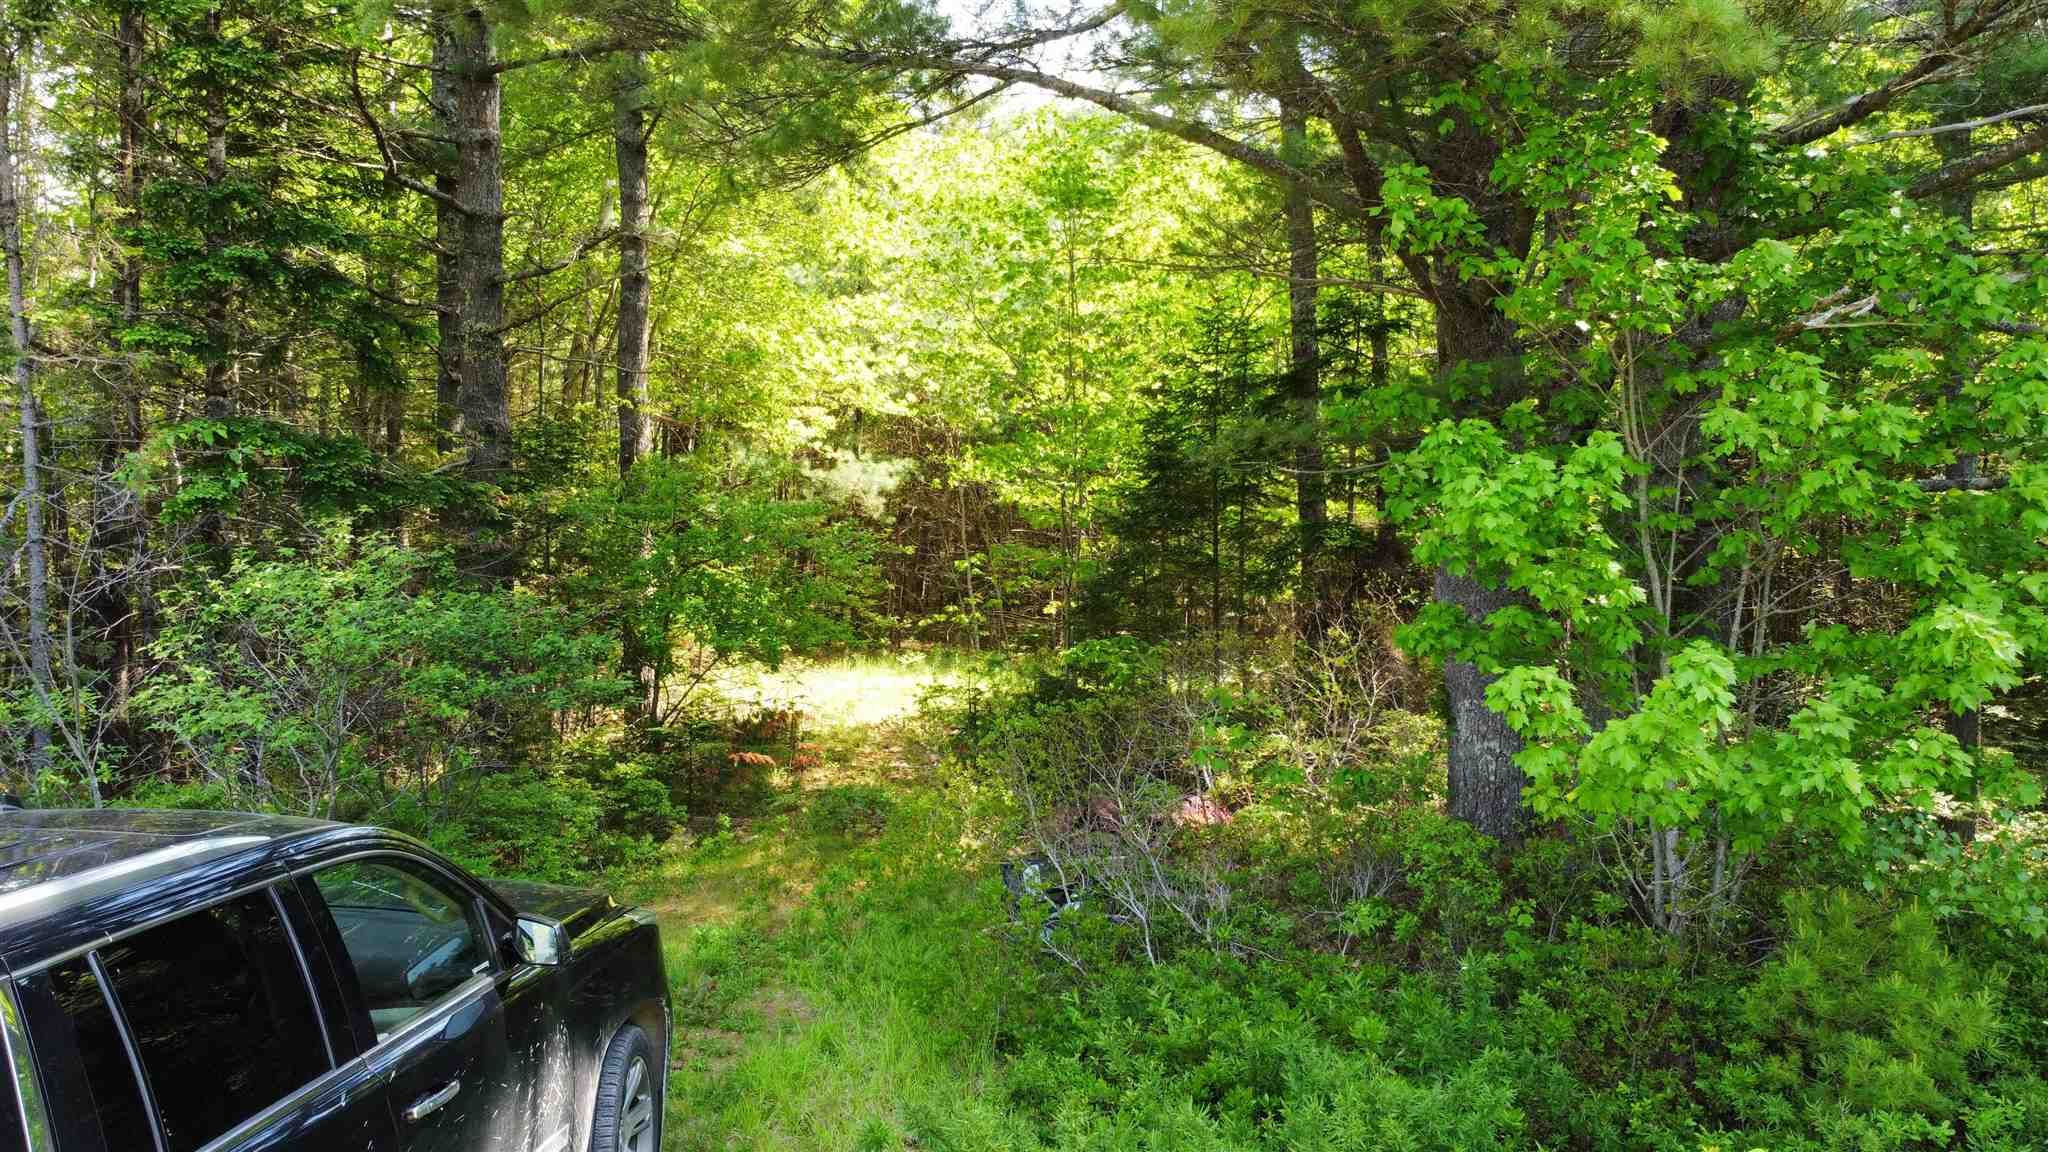 Main Photo: Lot Highway 203 in Shelburne: 407-Shelburne County Vacant Land for sale (South Shore)  : MLS®# 202114248